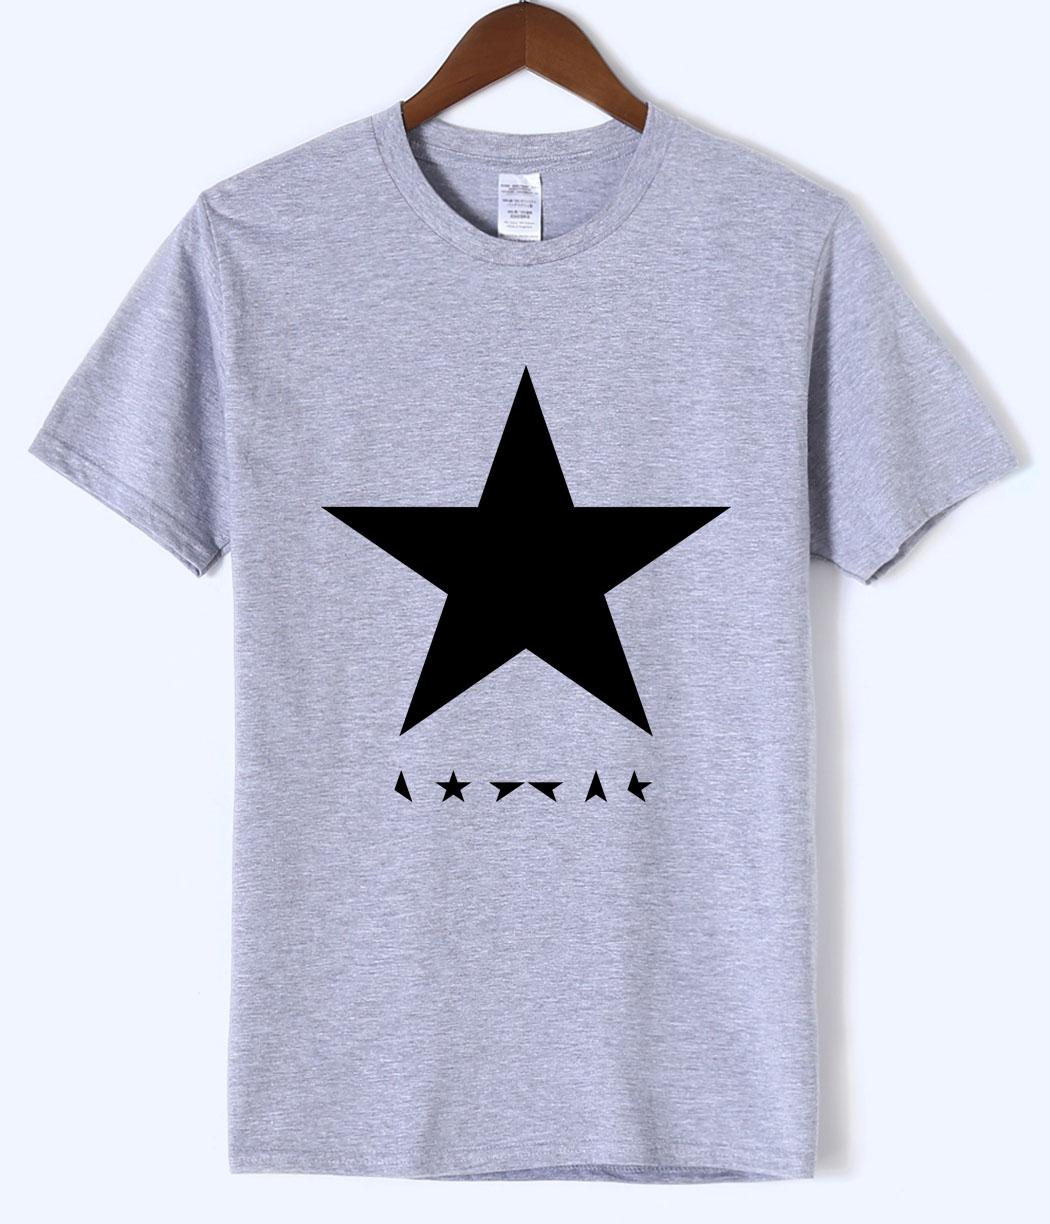 2b569f947 New Design David Bowie Heroes Black Star Posters Top Tees 2019 Summer  Fitness Men s T Shirt 100% Cotton Short Sleeve Men T-shirt